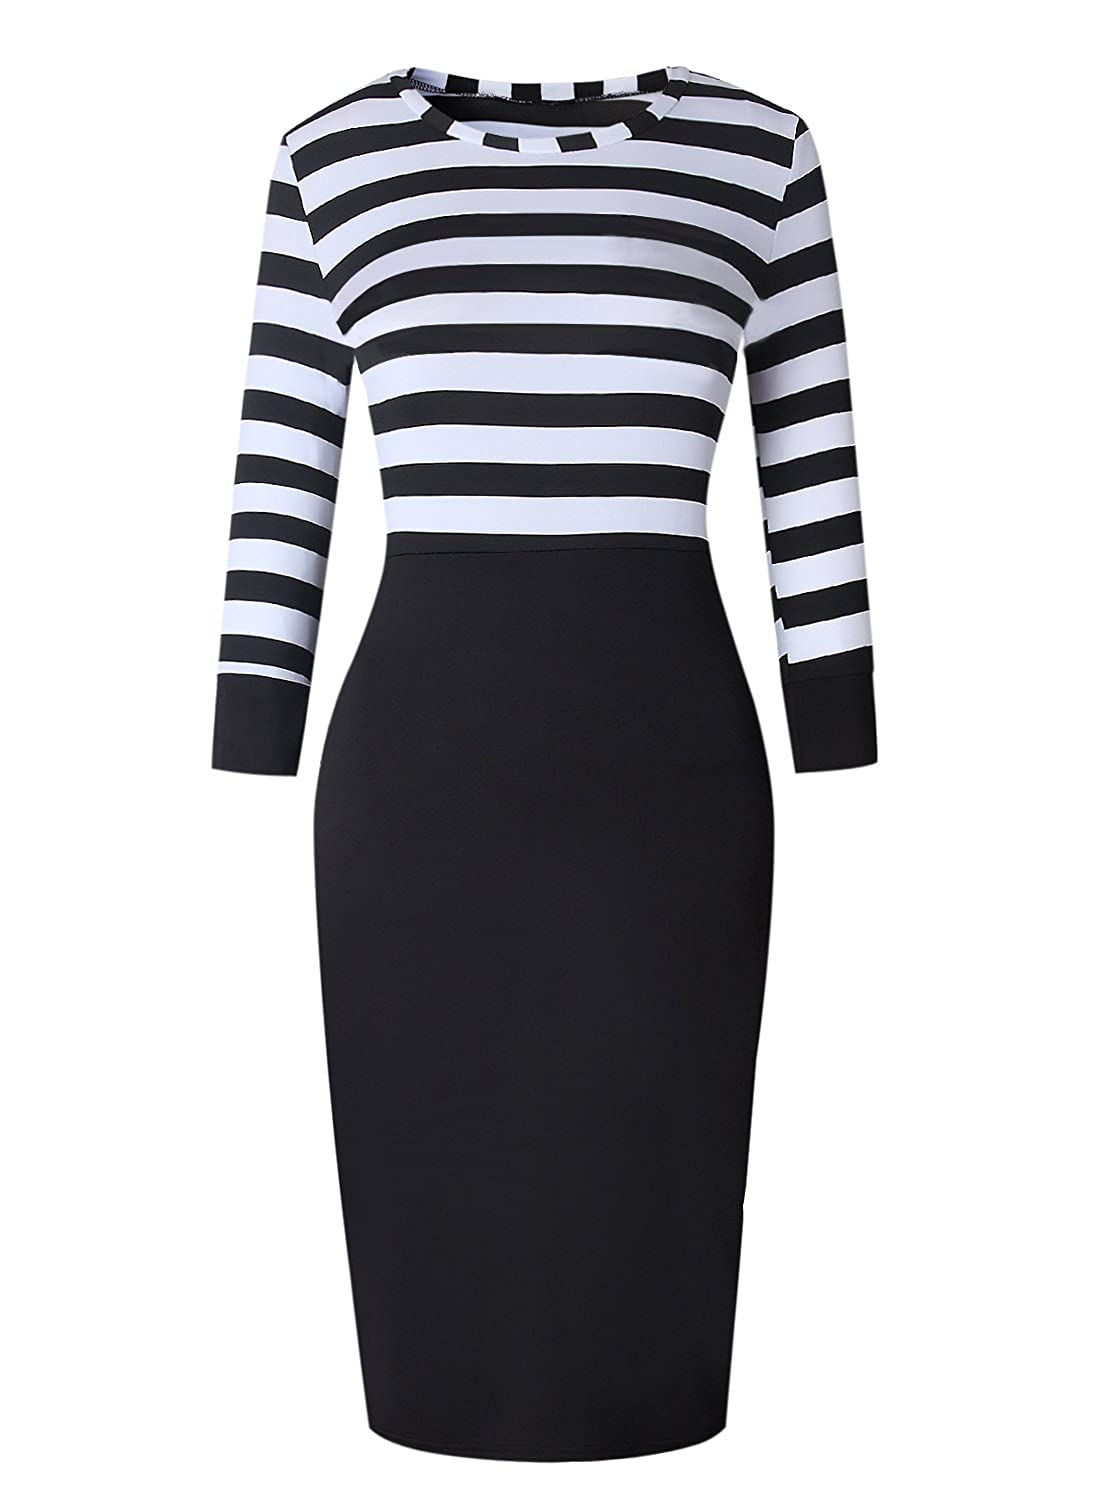 00a6630e536e4 Ranphee Black and White Striped Dress Women 3/4 Sleeve Patchwork Wear to  Work Office Sheath Dresses